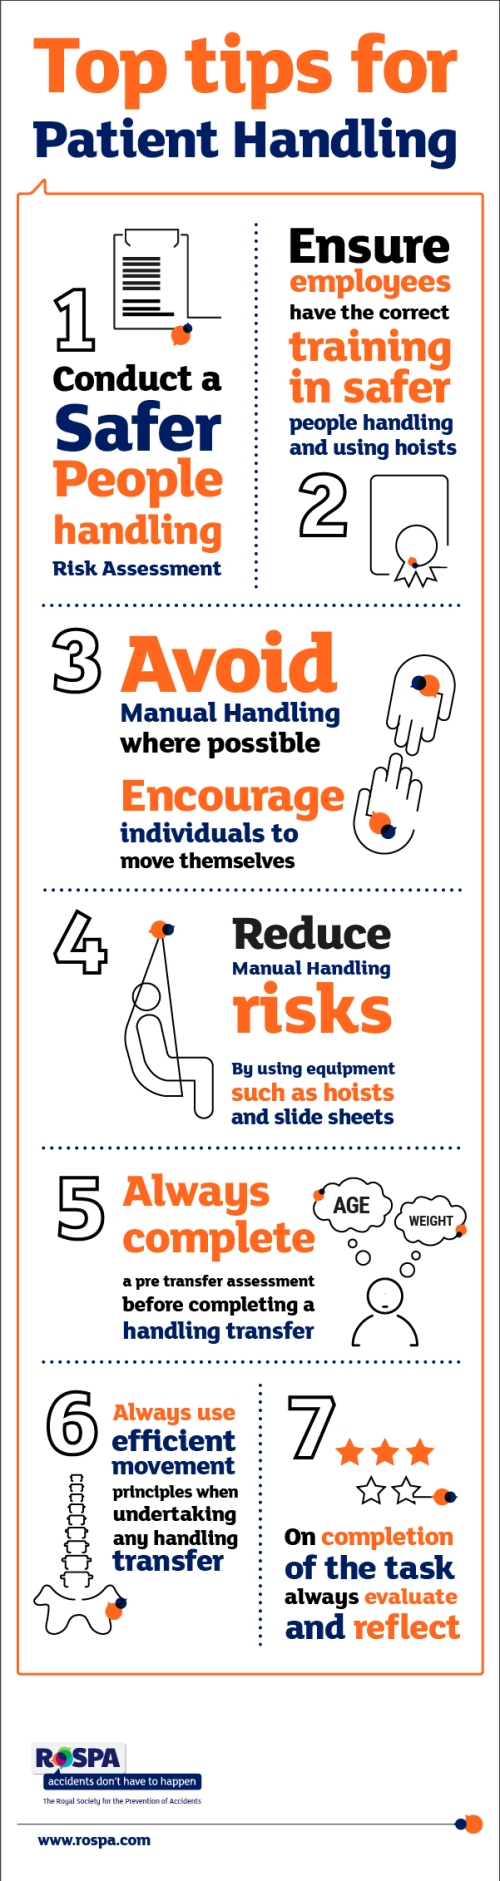 tc3110-infographic-top-tips-for-paitientl-handling-v1-02